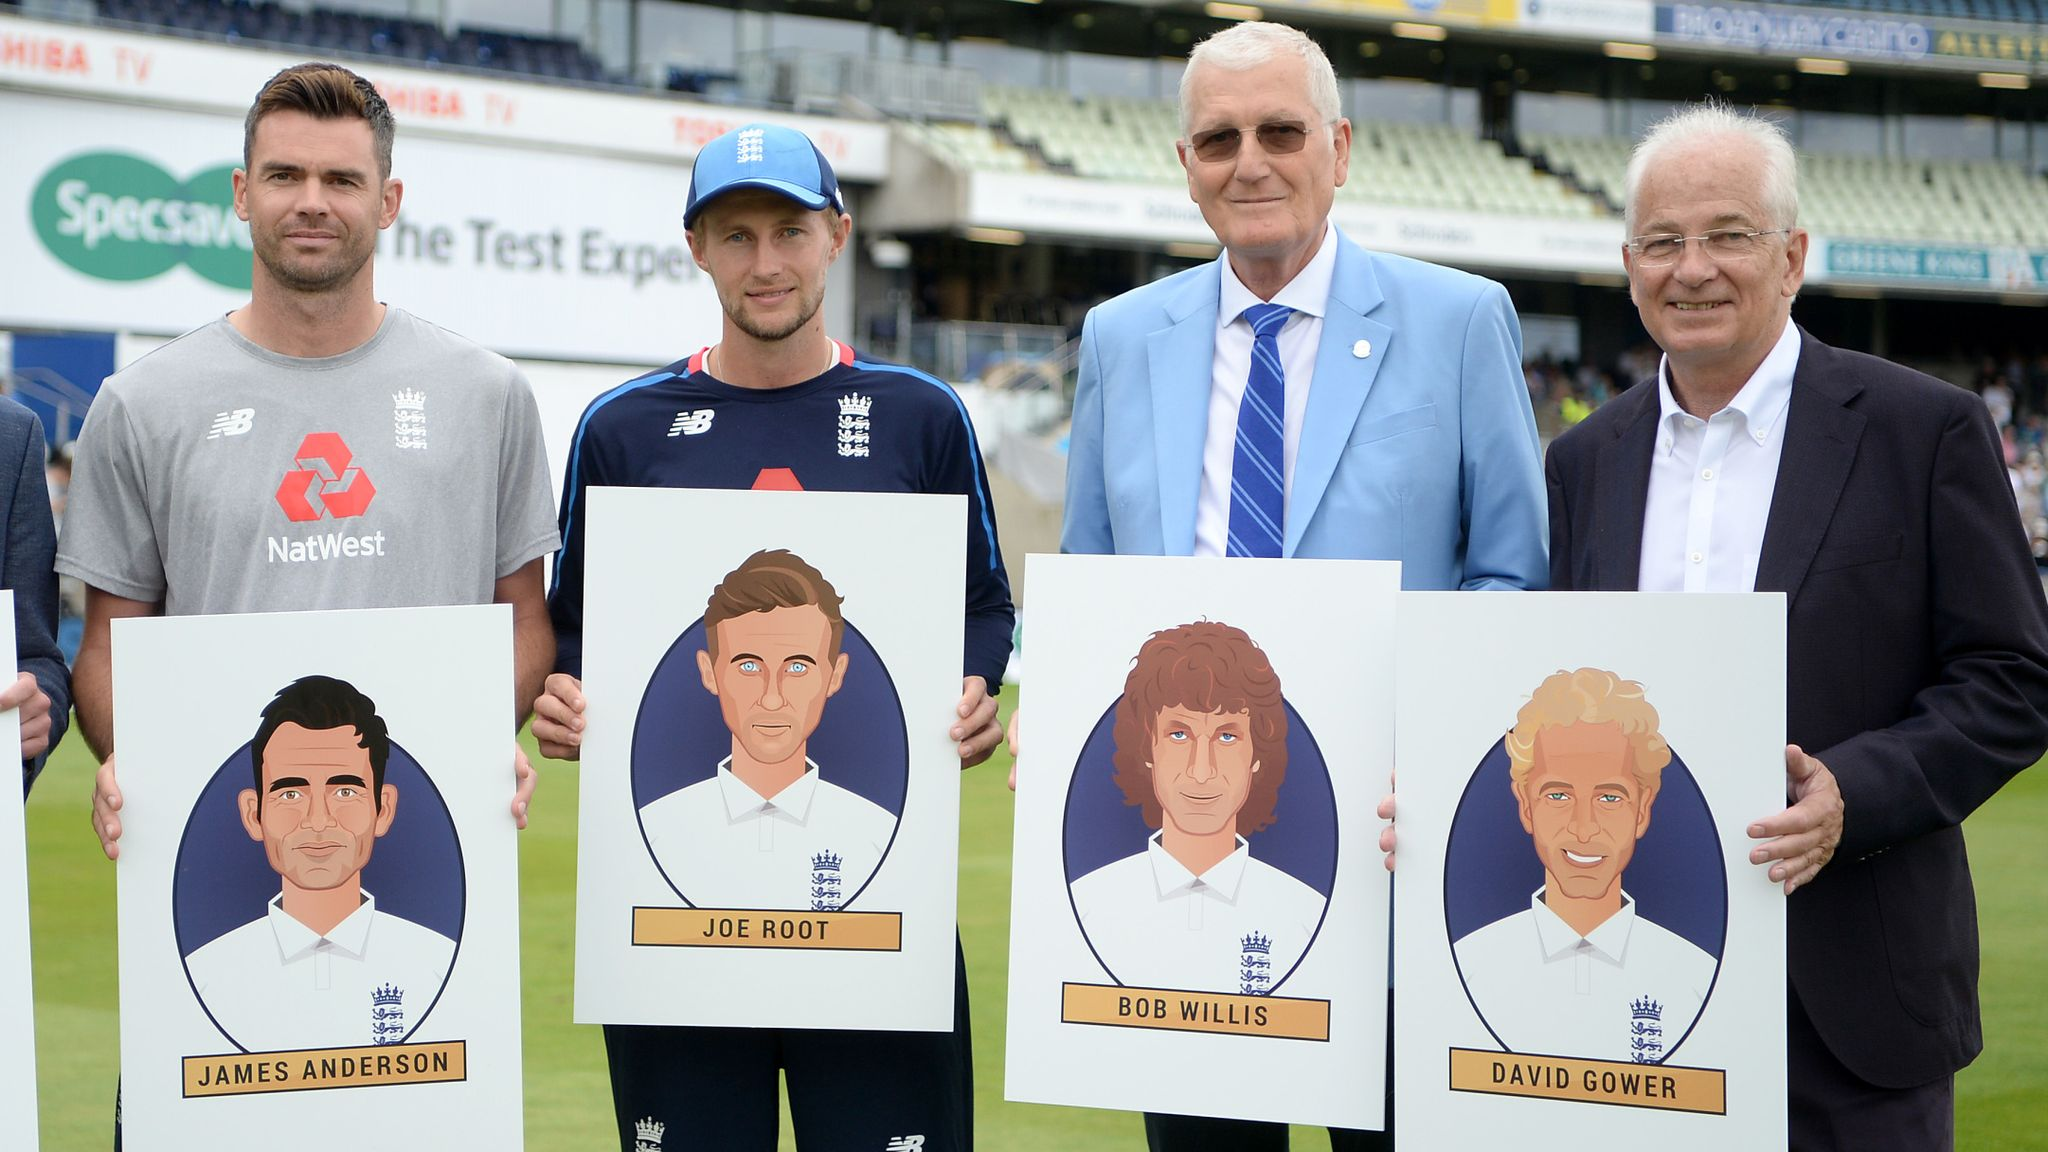 Bob Willis was a cricketing colossus whose indefatigable spirit made him an England bowling great